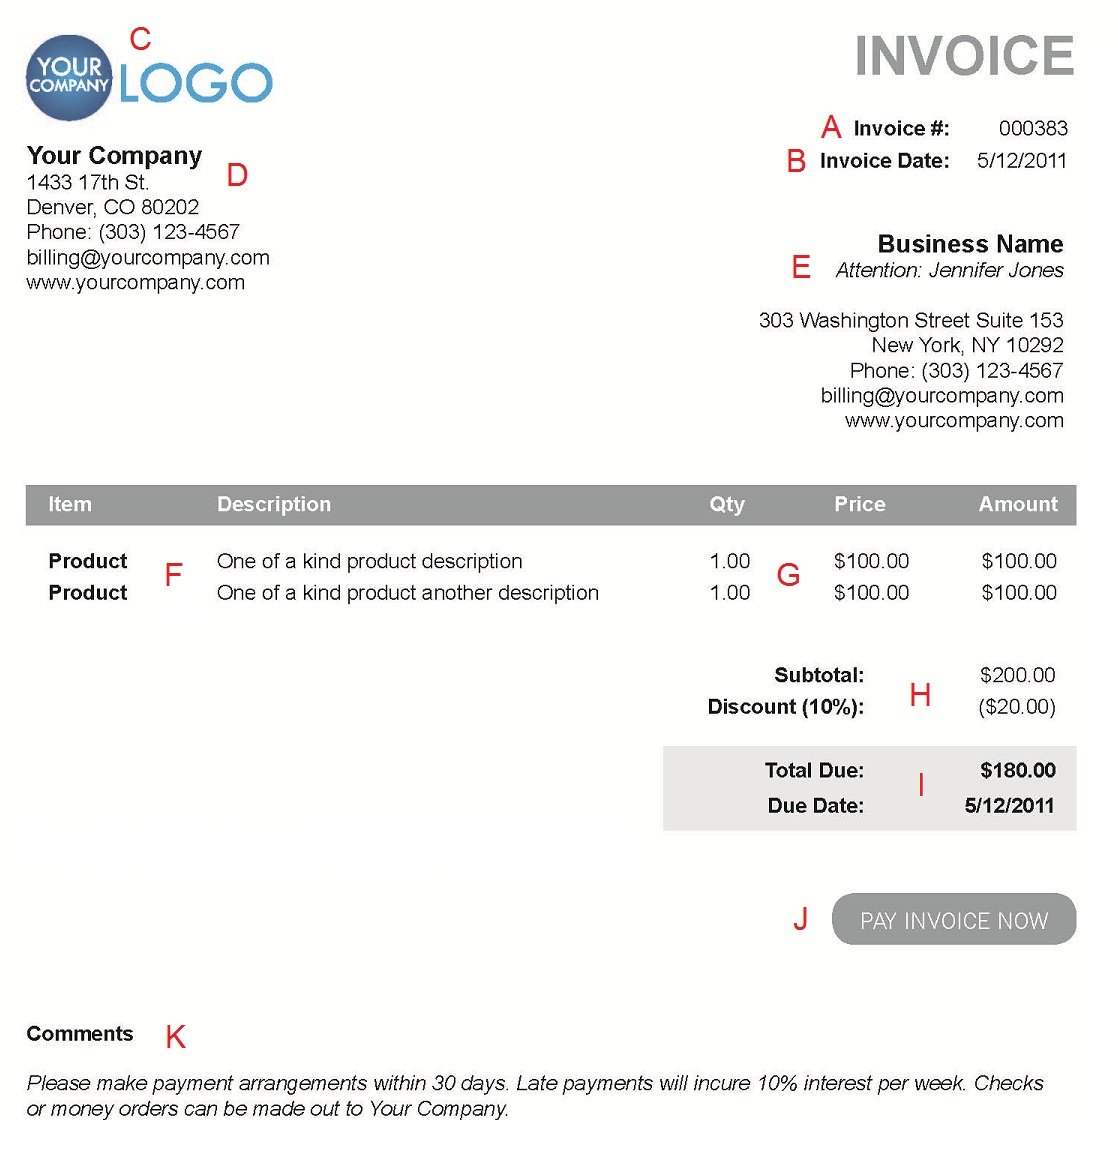 Gpwaus  Wonderful The  Different Sections Of An Electronic Payment Invoice With Hot A  With Attractive Checking Invoices Also Invoice Templates Online In Addition Professional Invoice Software And Php Invoice Script As Well As Invoice Vat Number Additionally Myob Invoice From Paysimplecom With Gpwaus  Hot The  Different Sections Of An Electronic Payment Invoice With Attractive A  And Wonderful Checking Invoices Also Invoice Templates Online In Addition Professional Invoice Software From Paysimplecom